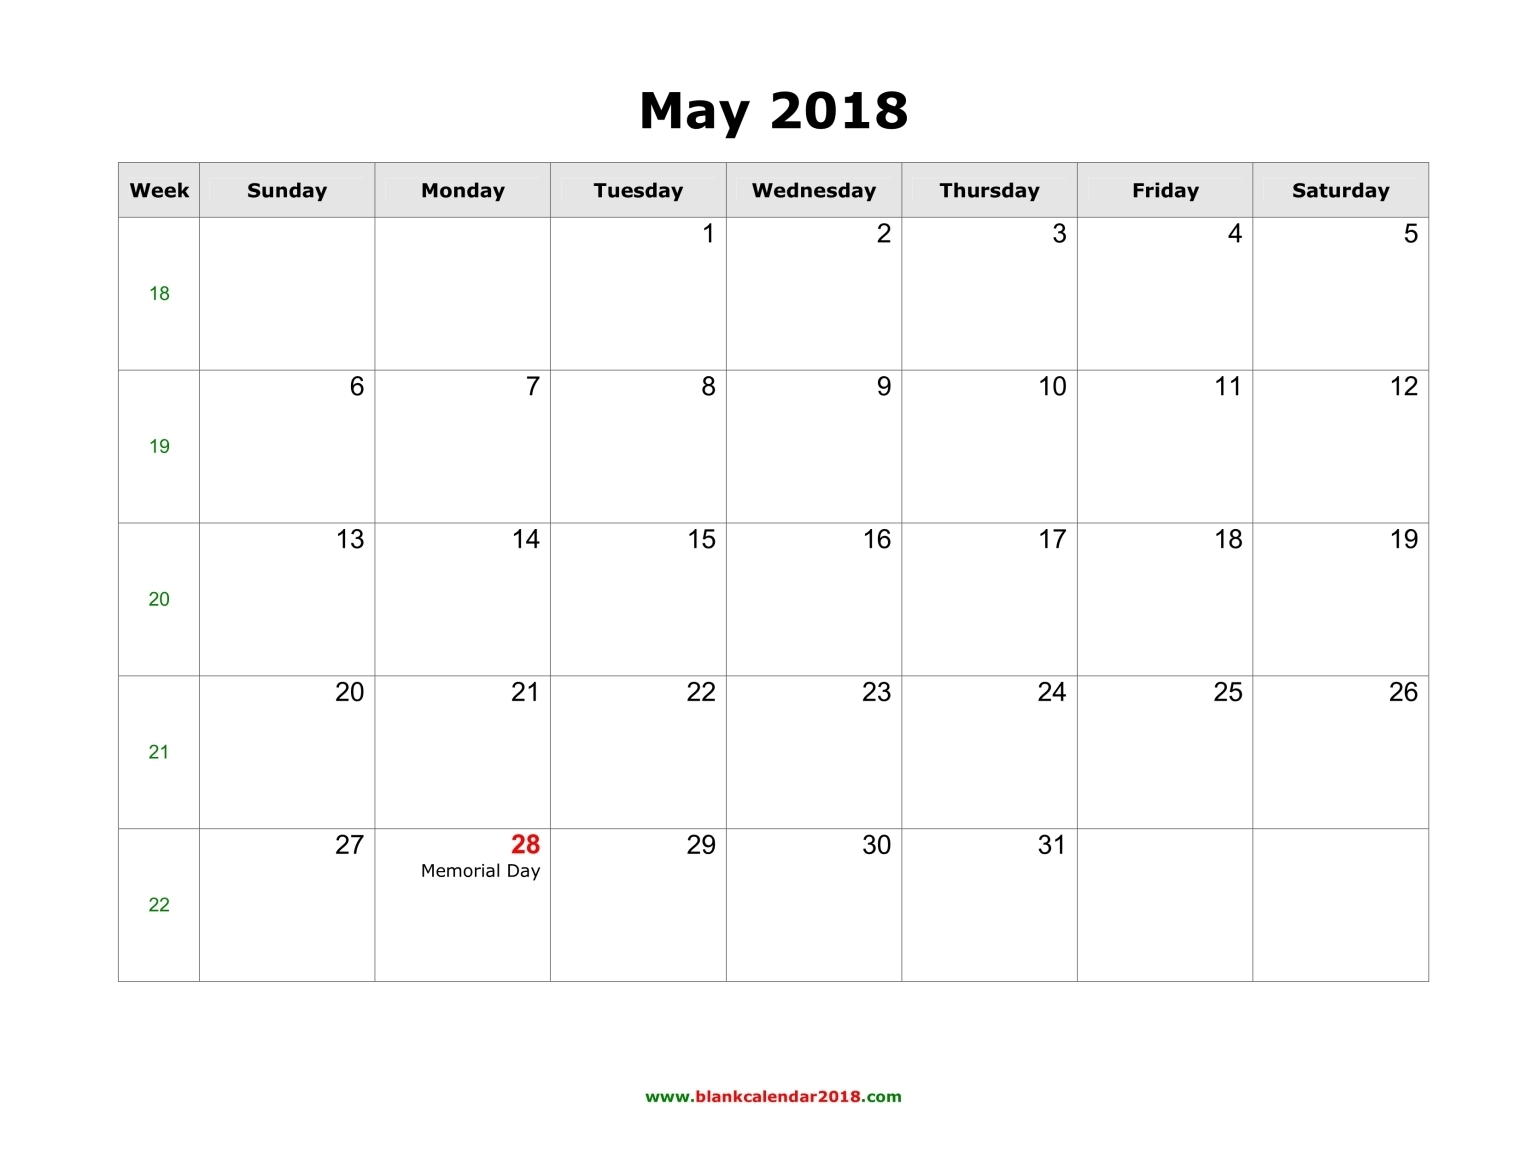 May Calendar With Holidays : Blank holidays calendar may landscape